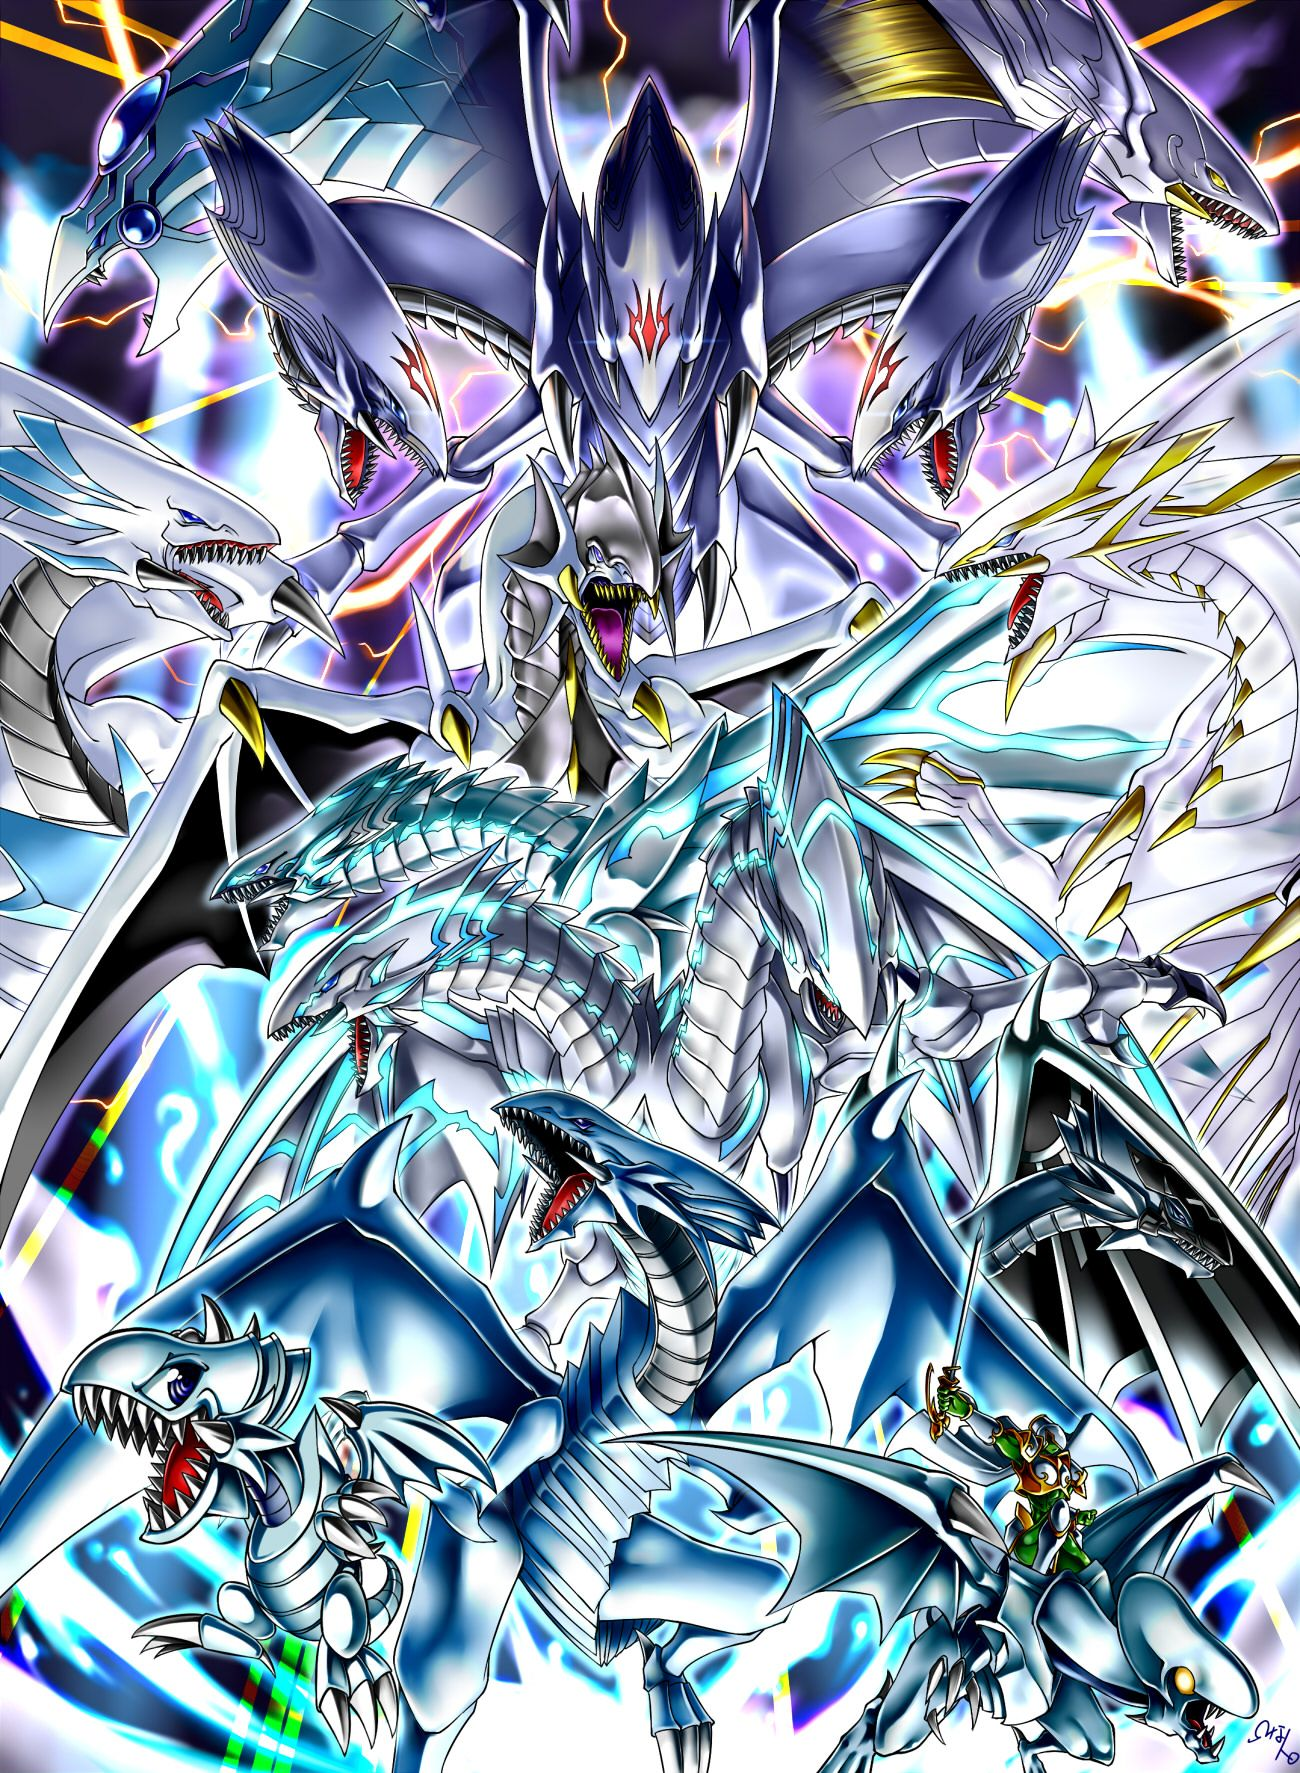 Idea by joud on yugioh monster yugioh dragons white